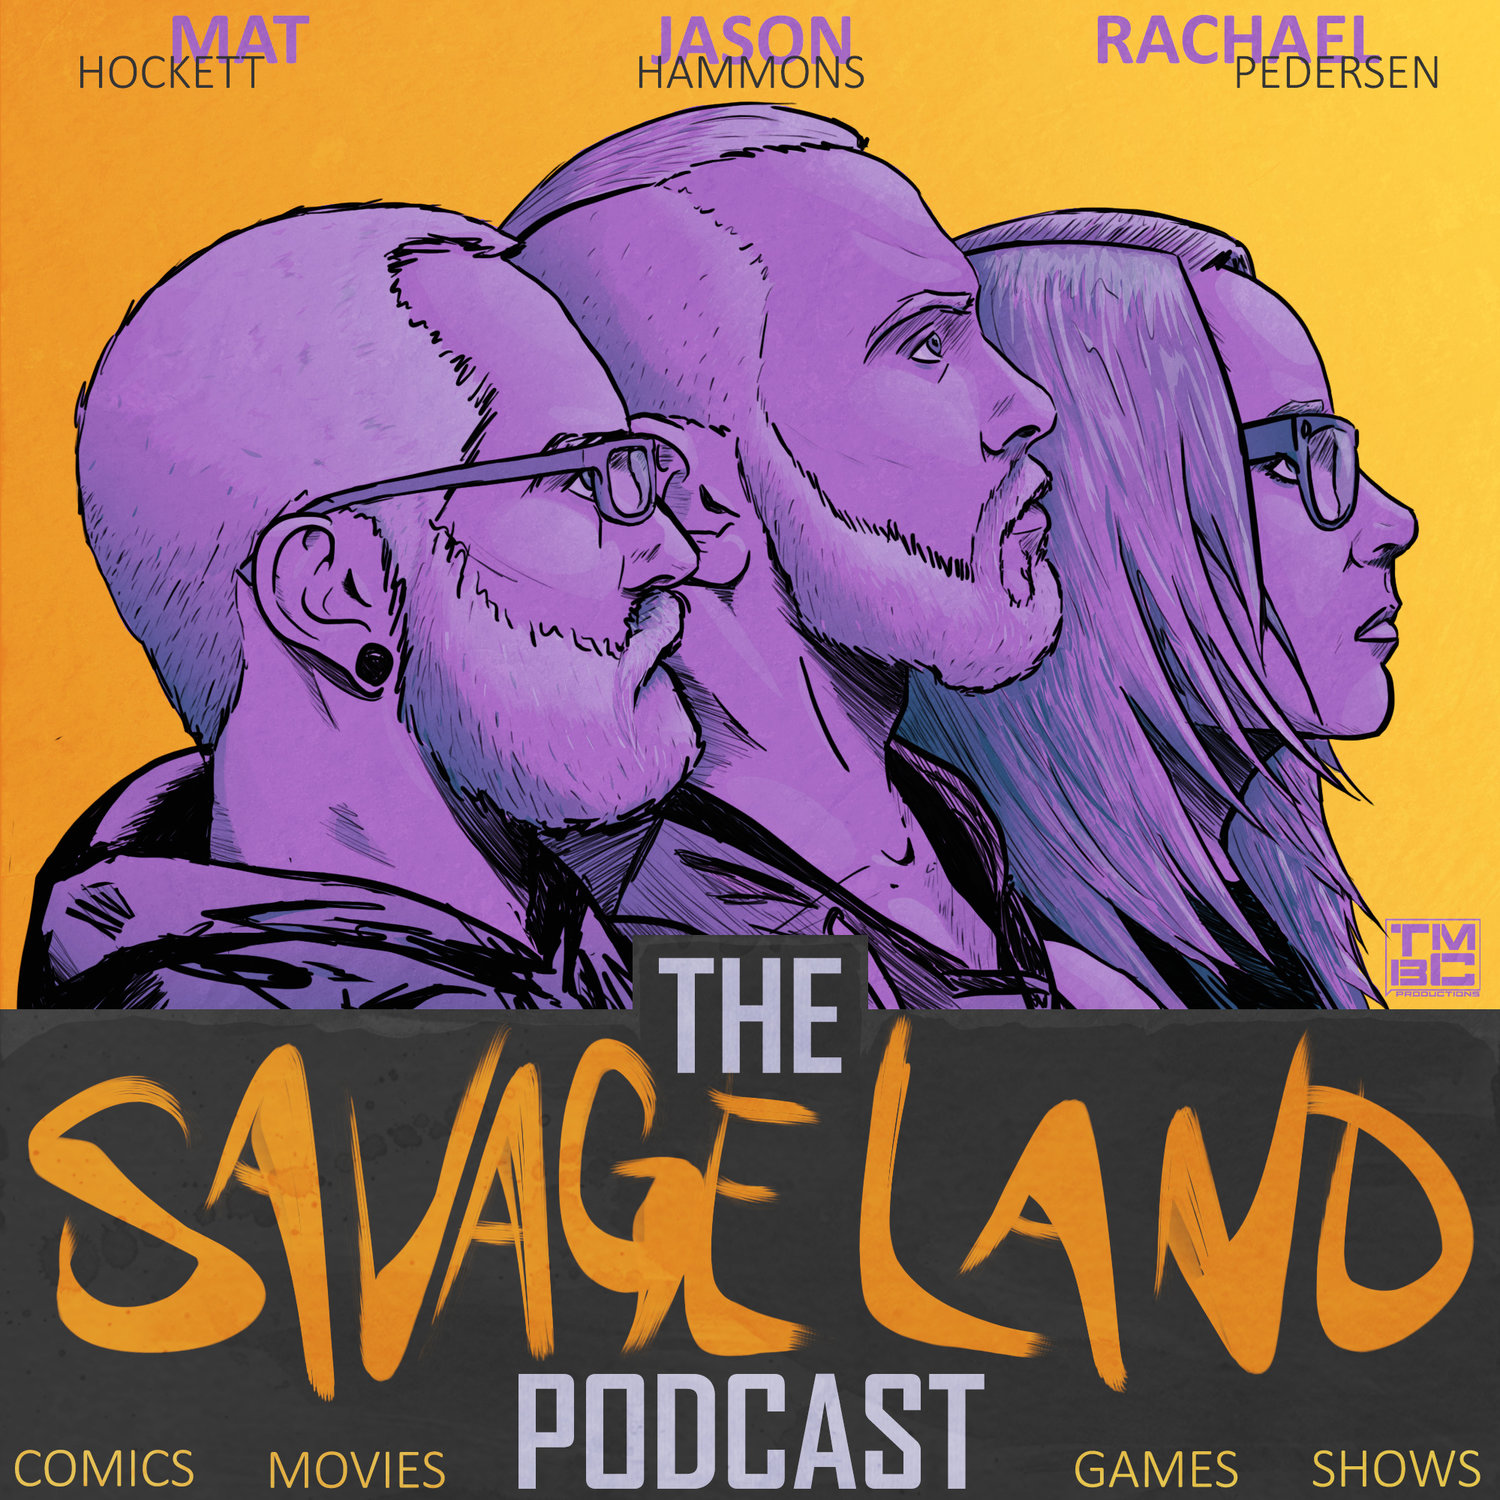 The Savage Land Podcast | Comic Books, Movies, TV and Video Games